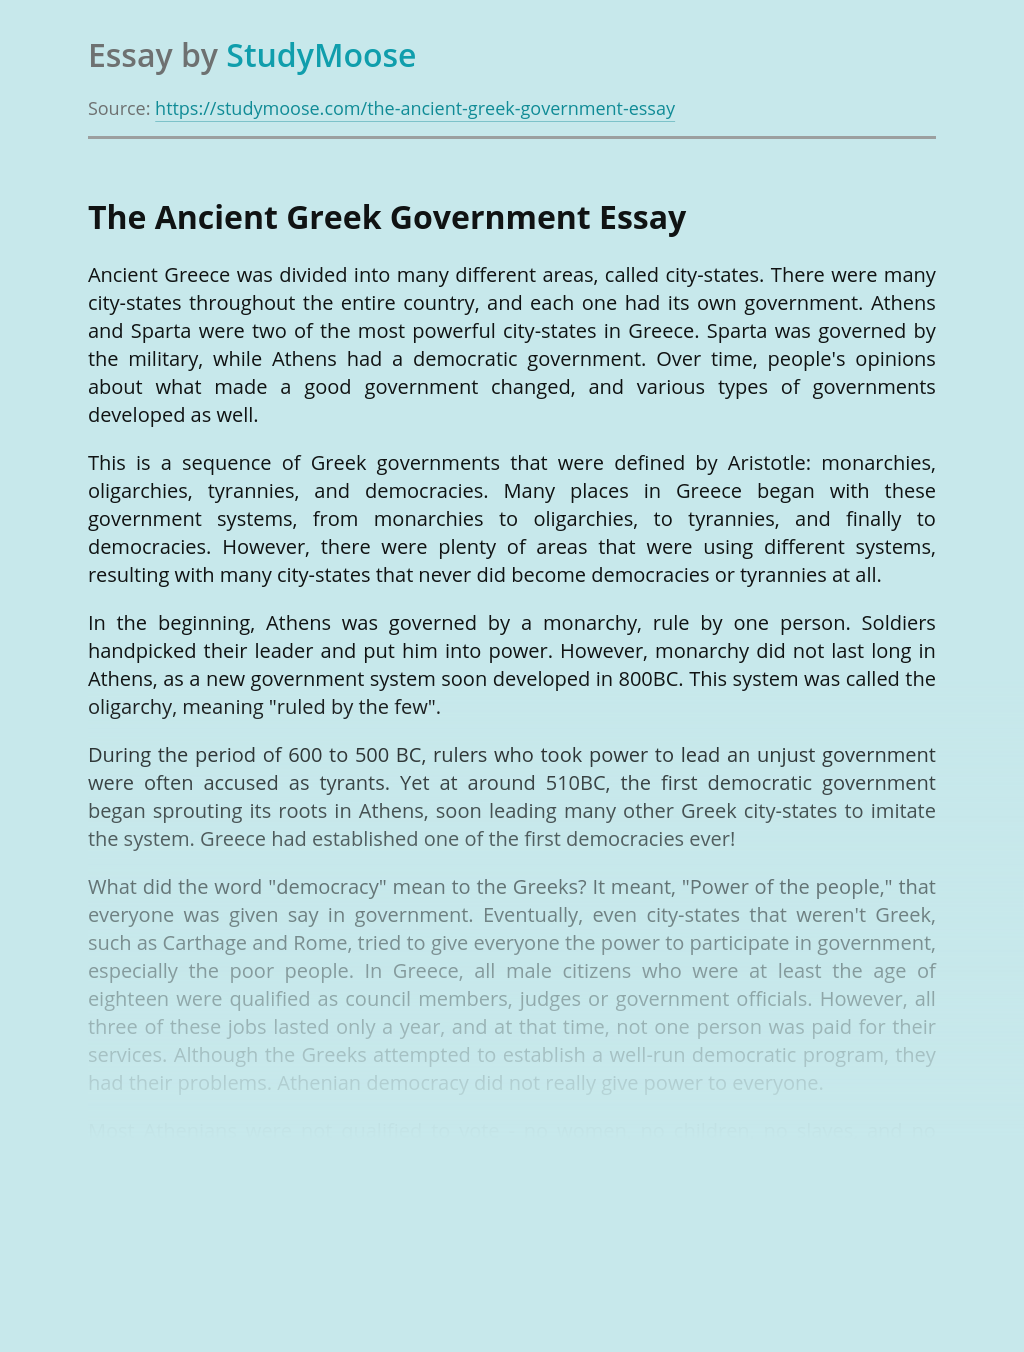 The Ancient Greek Government